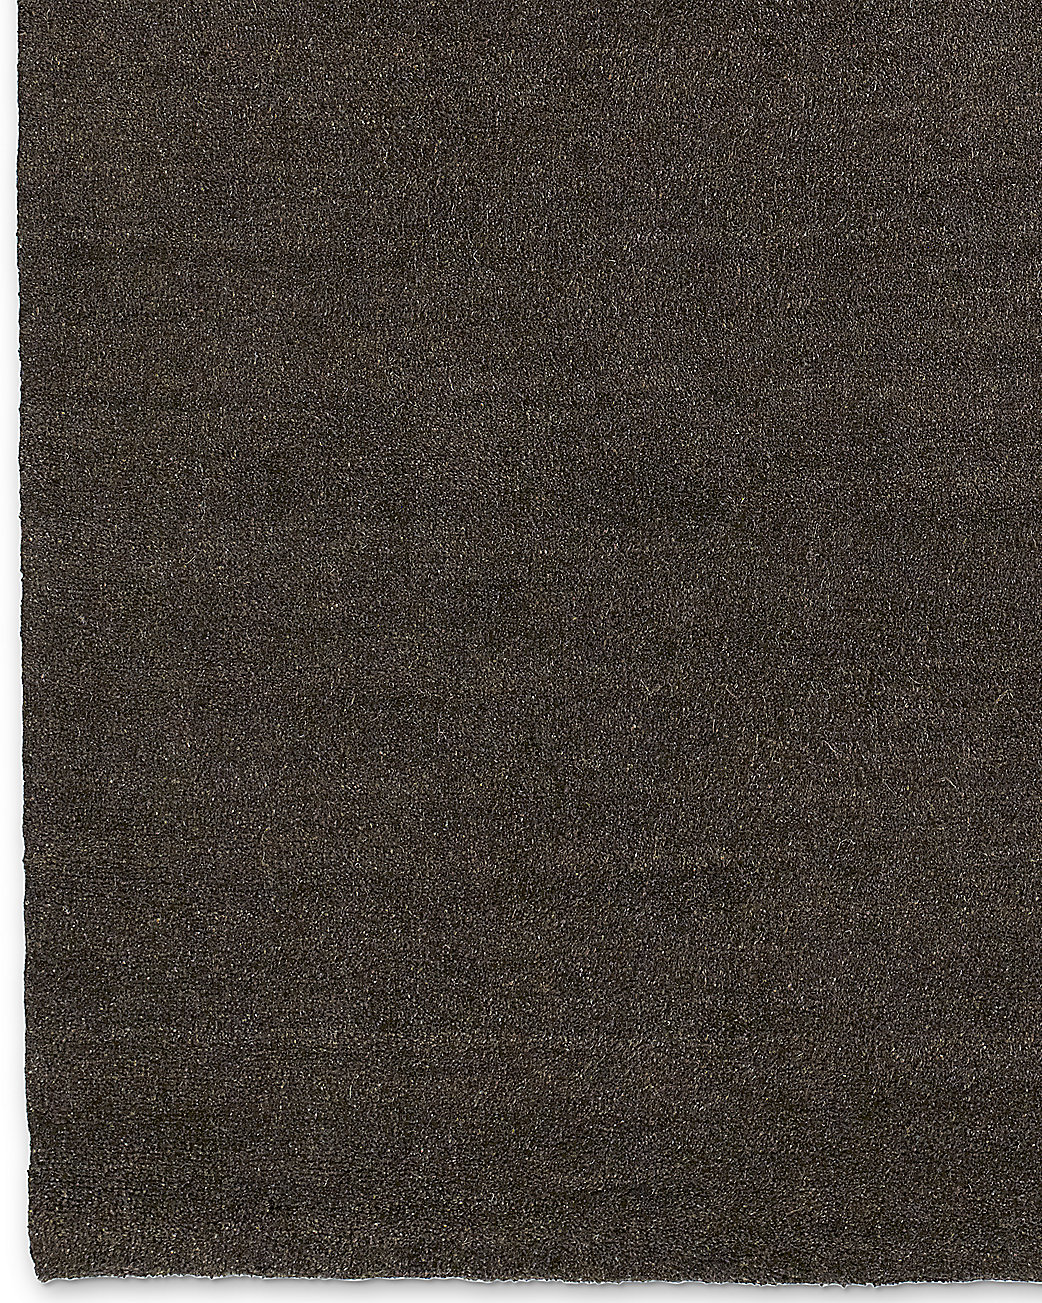 Luxe Heathered Wool Rug - Chocolate